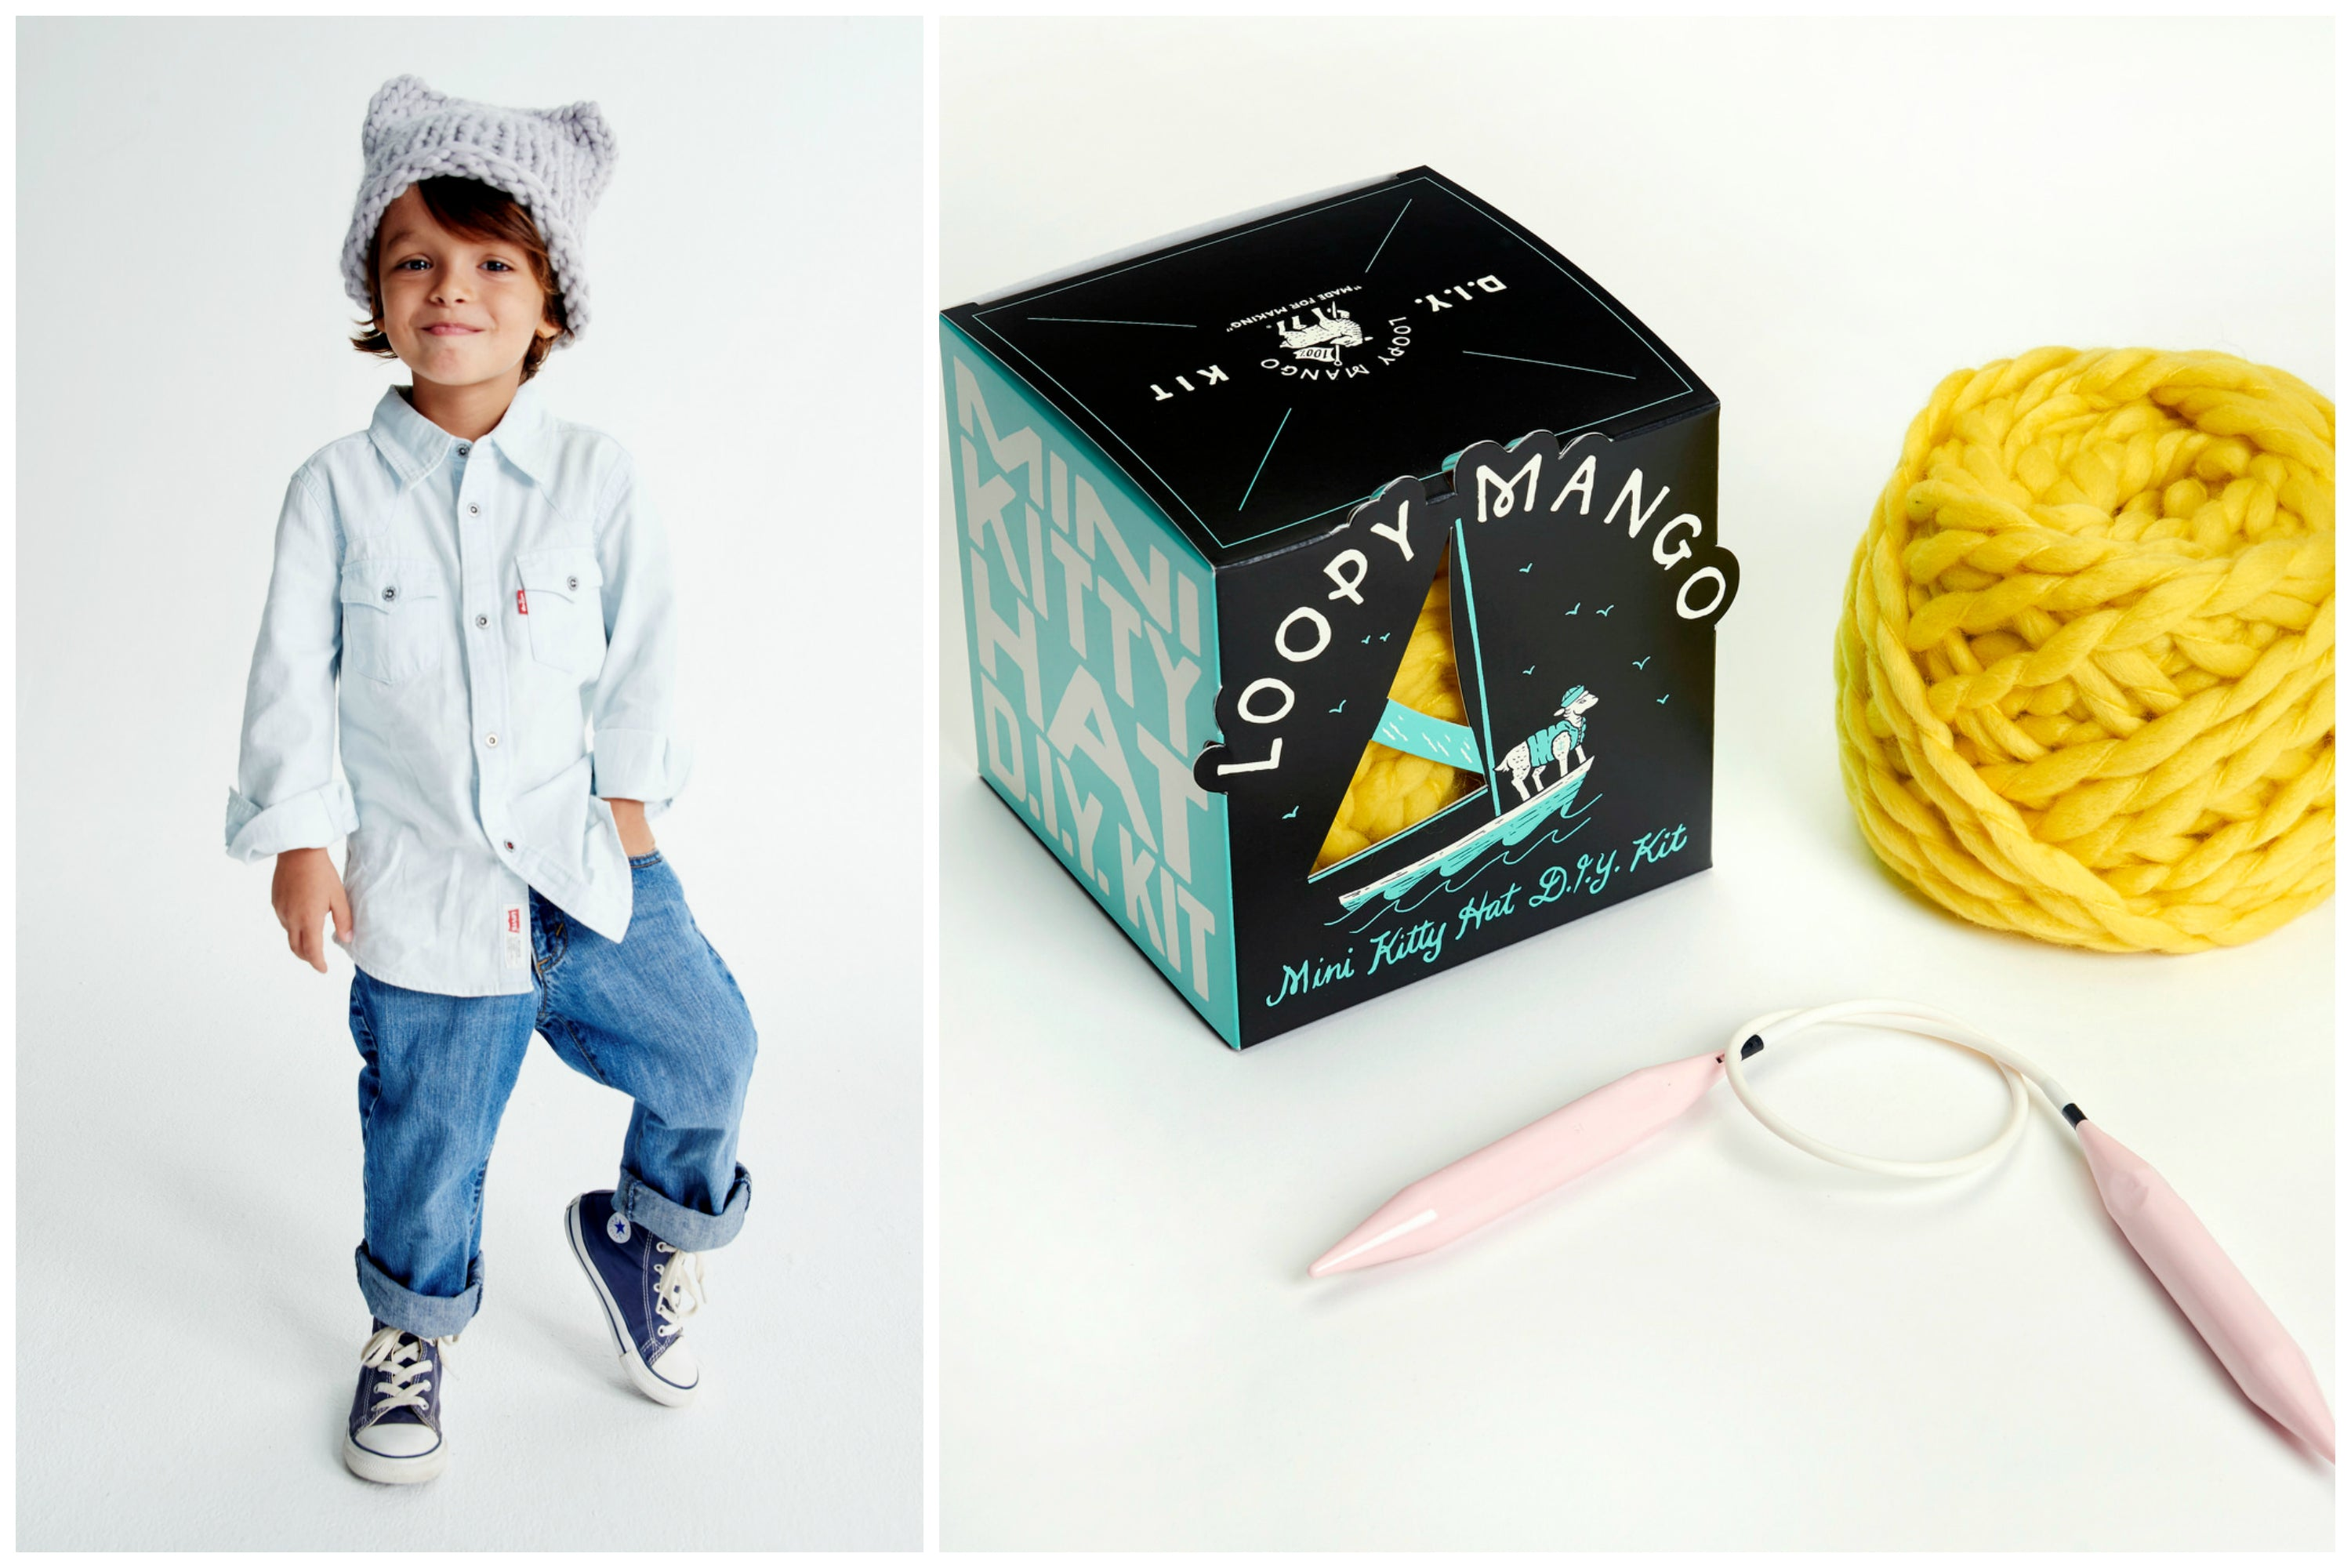 DIY Box Kit - Mini Kitty Hat 1-4 years old - Merino No. 5